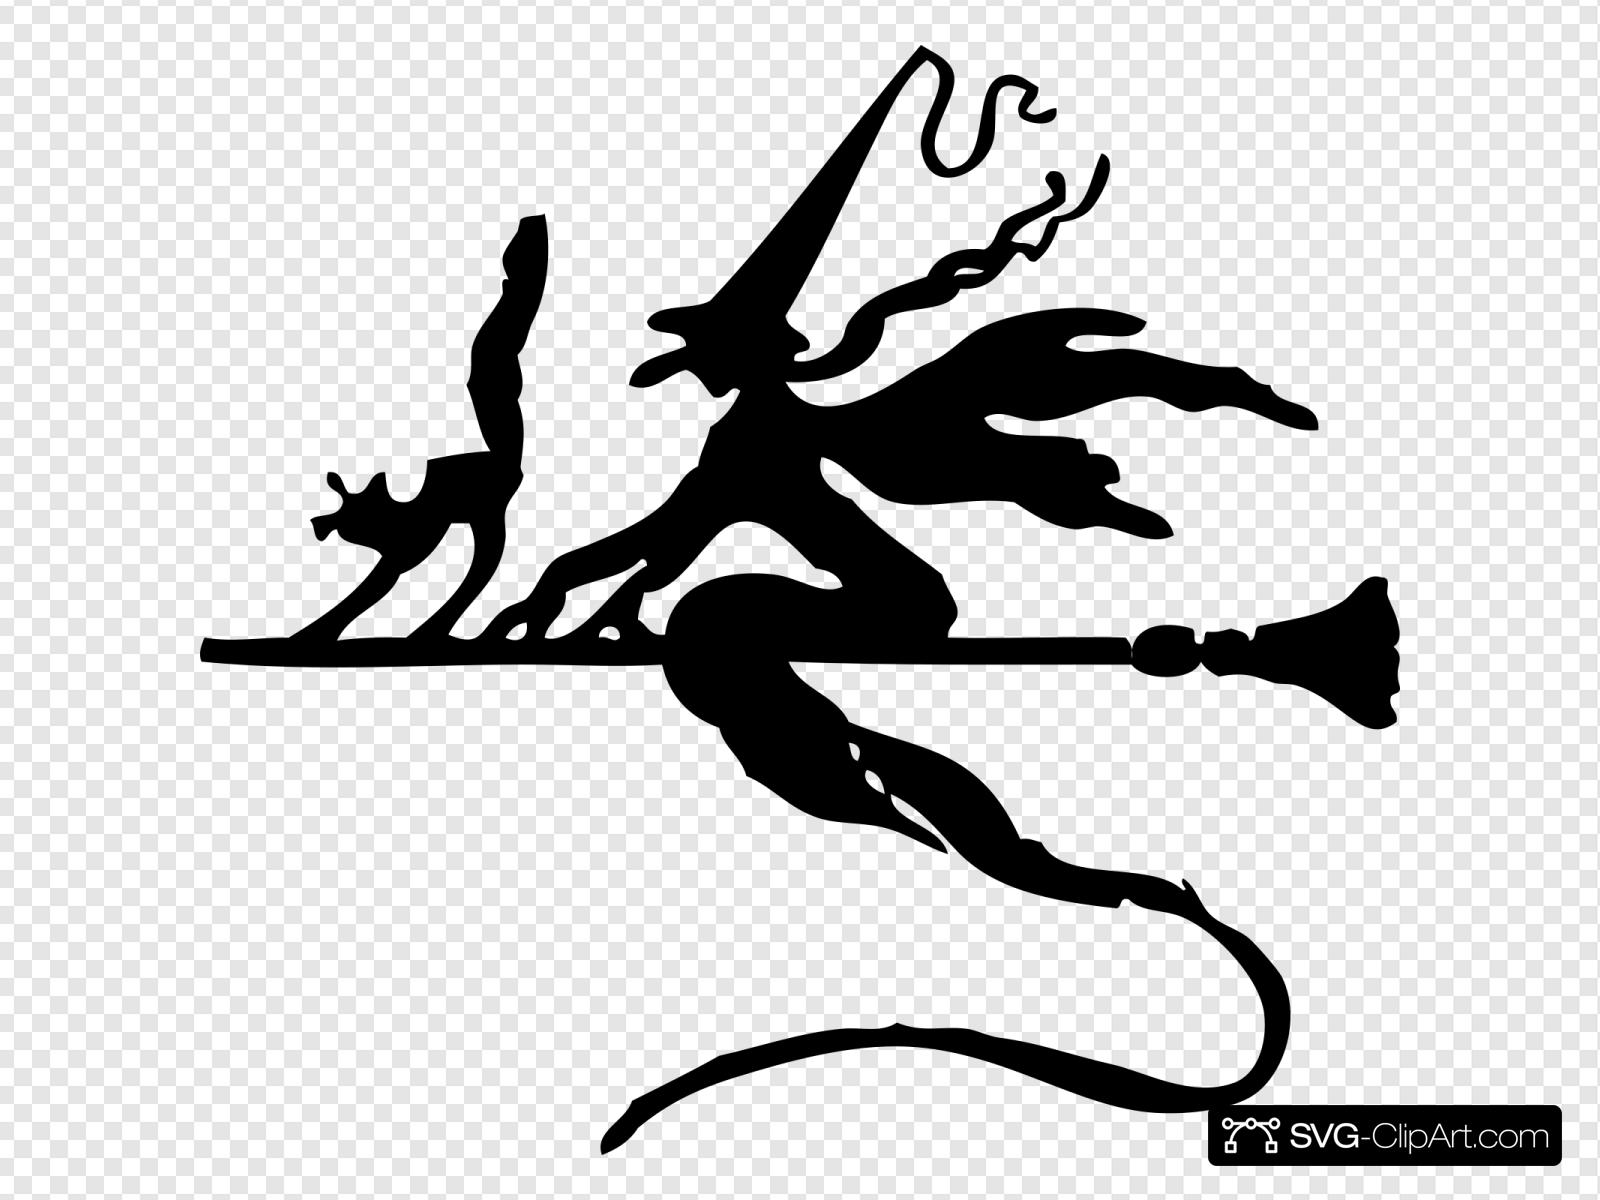 Witch On A Broom Stick Svg Vector Witch On A Broom Stick Clip Art Svg Clipart